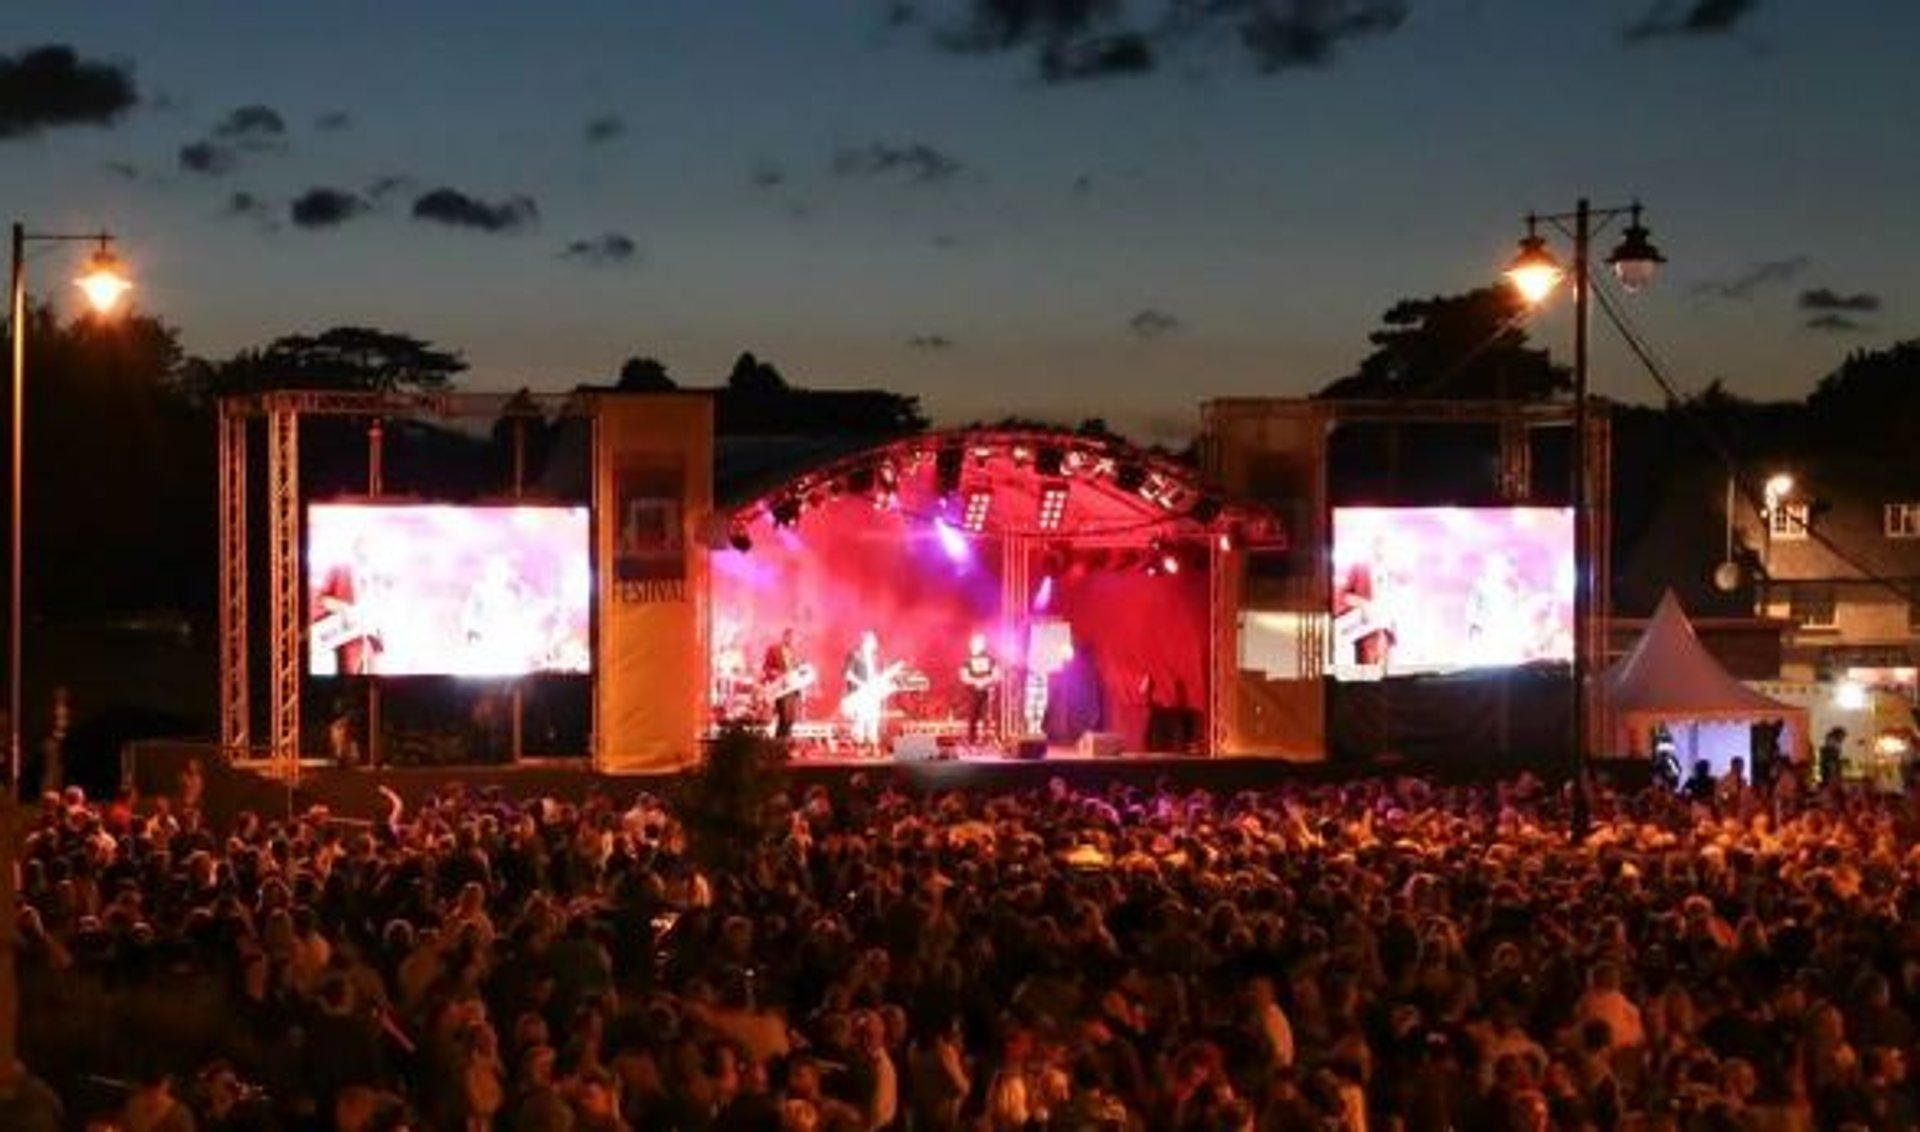 Monmouth Festival in Wales 2020 - Best Time